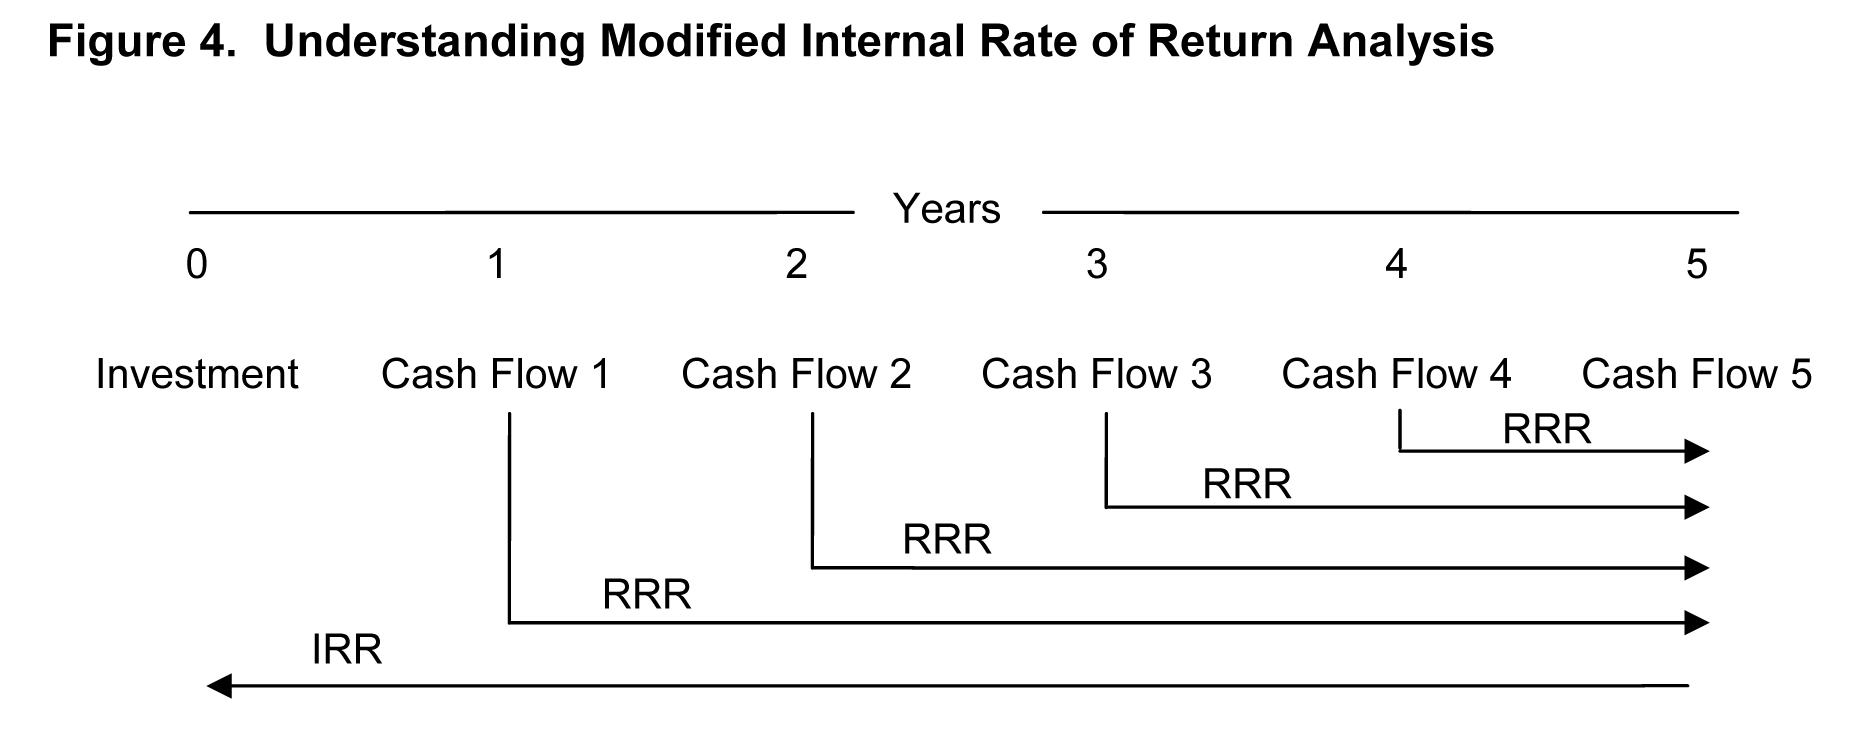 Understanding modified internal rate of return analysis